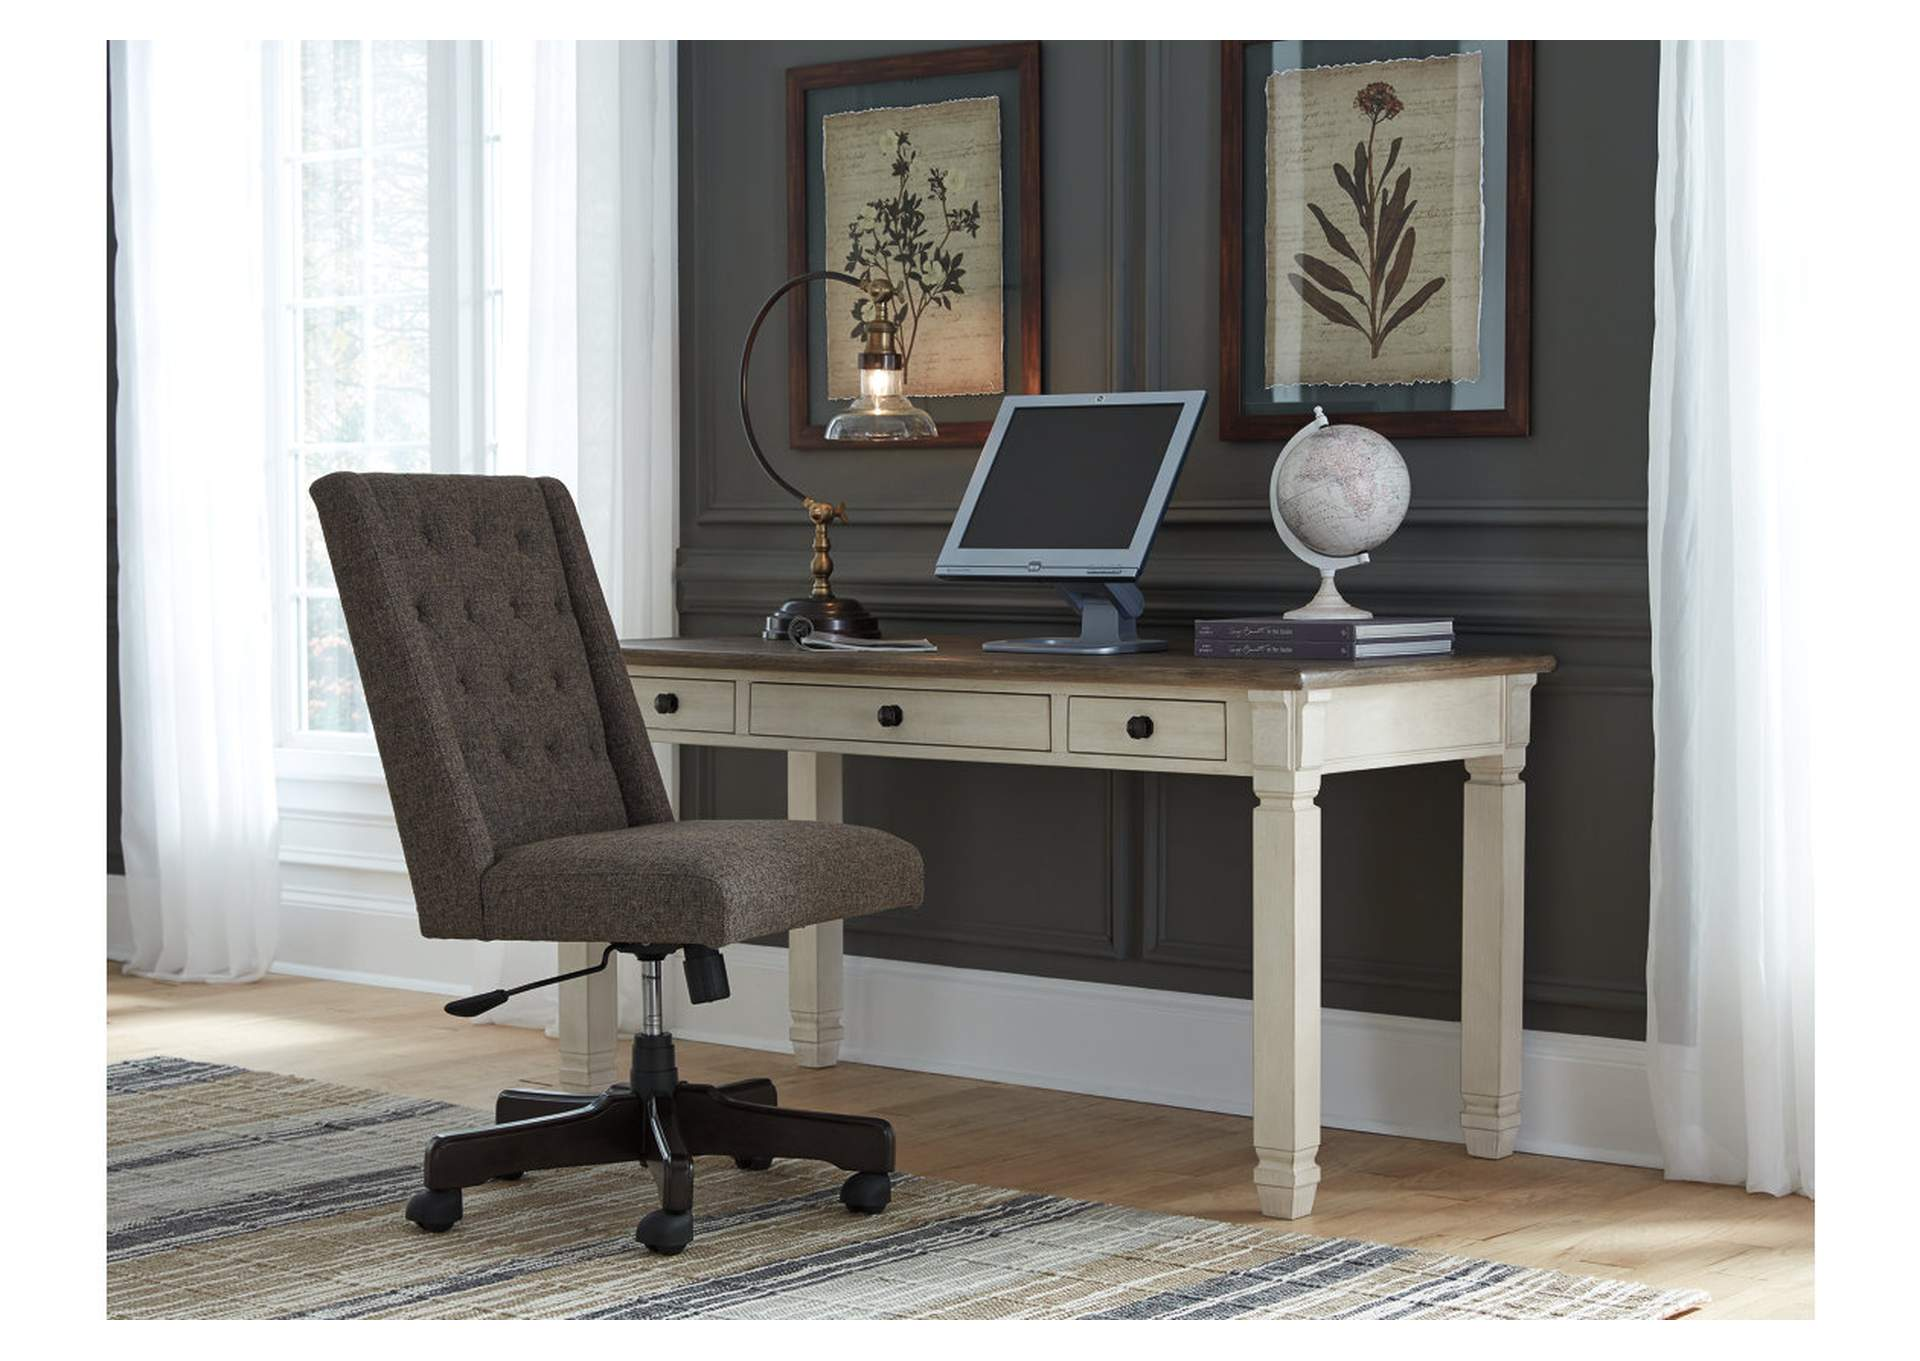 Bolanburg Two-Tone Home Office Desk,Signature Design By Ashley